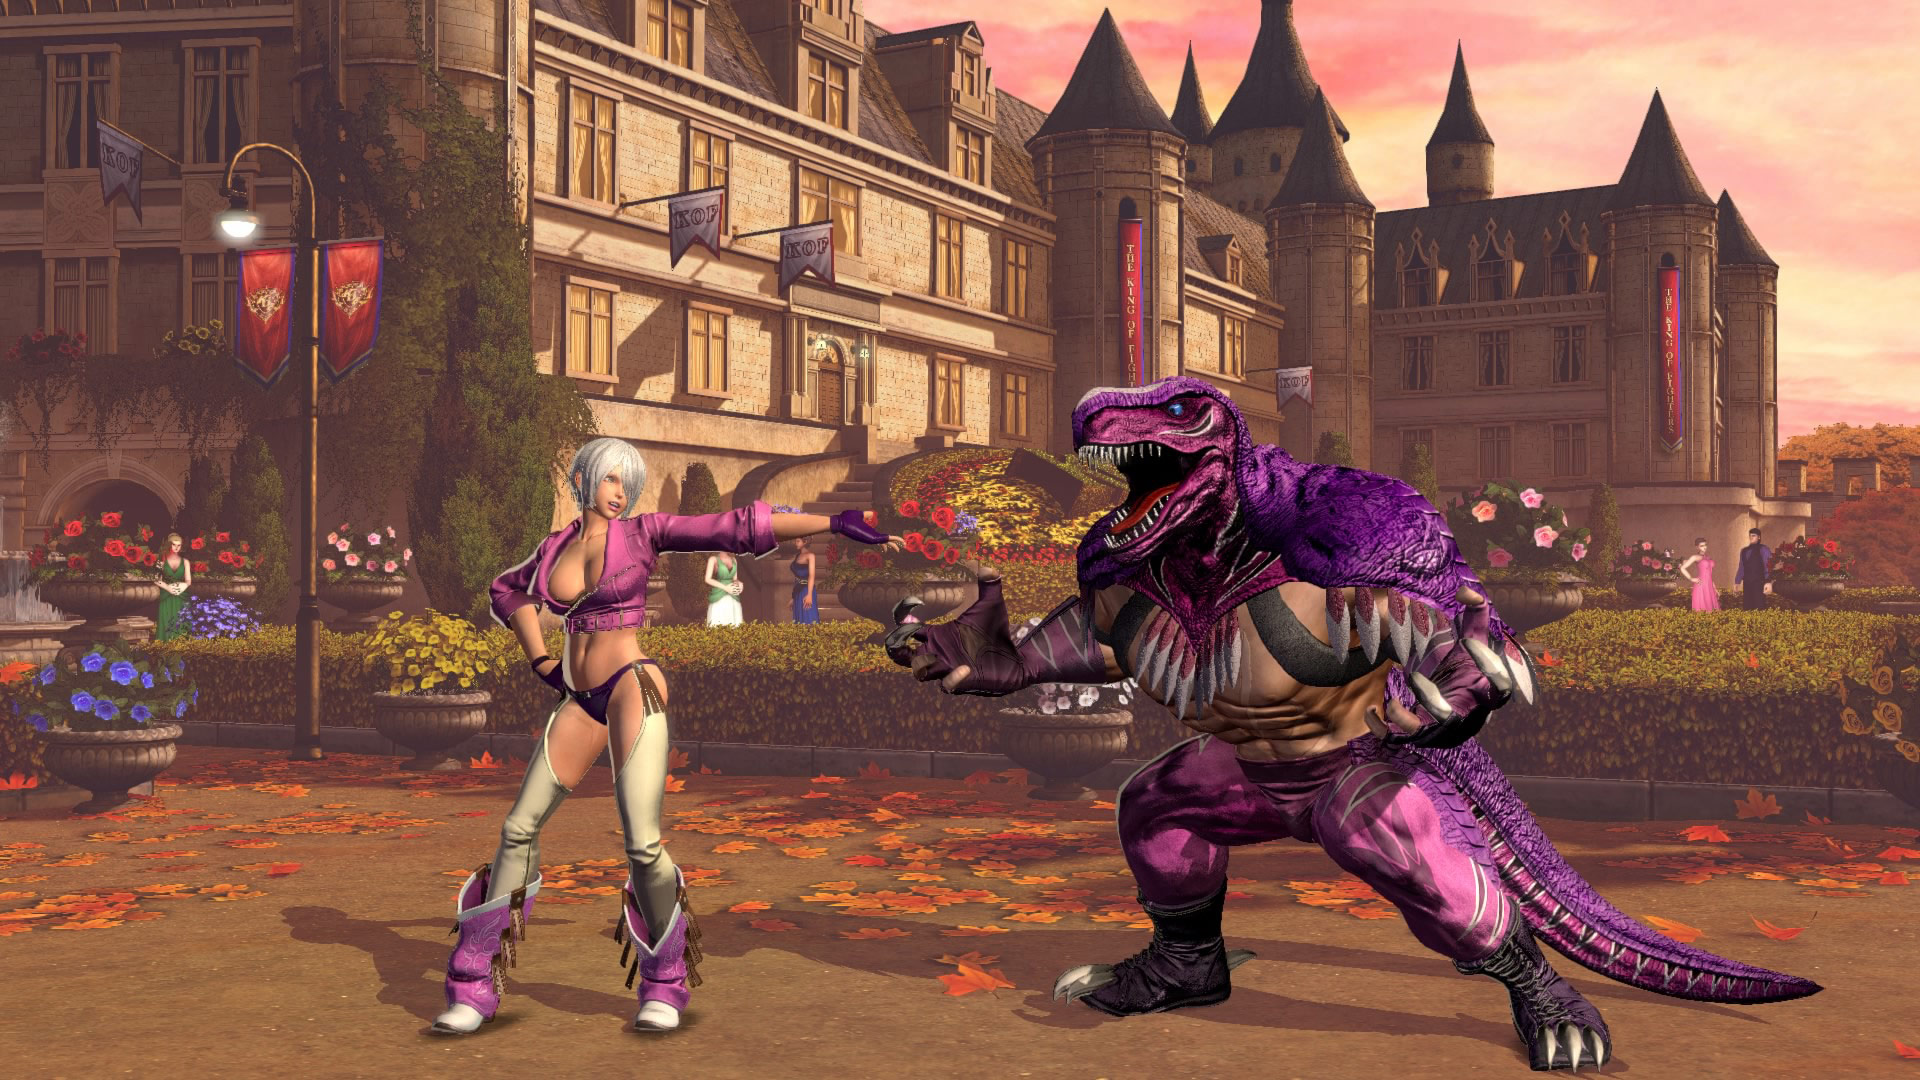 King of Fighters 14 1.10 graphics update 41 out of 60 image gallery